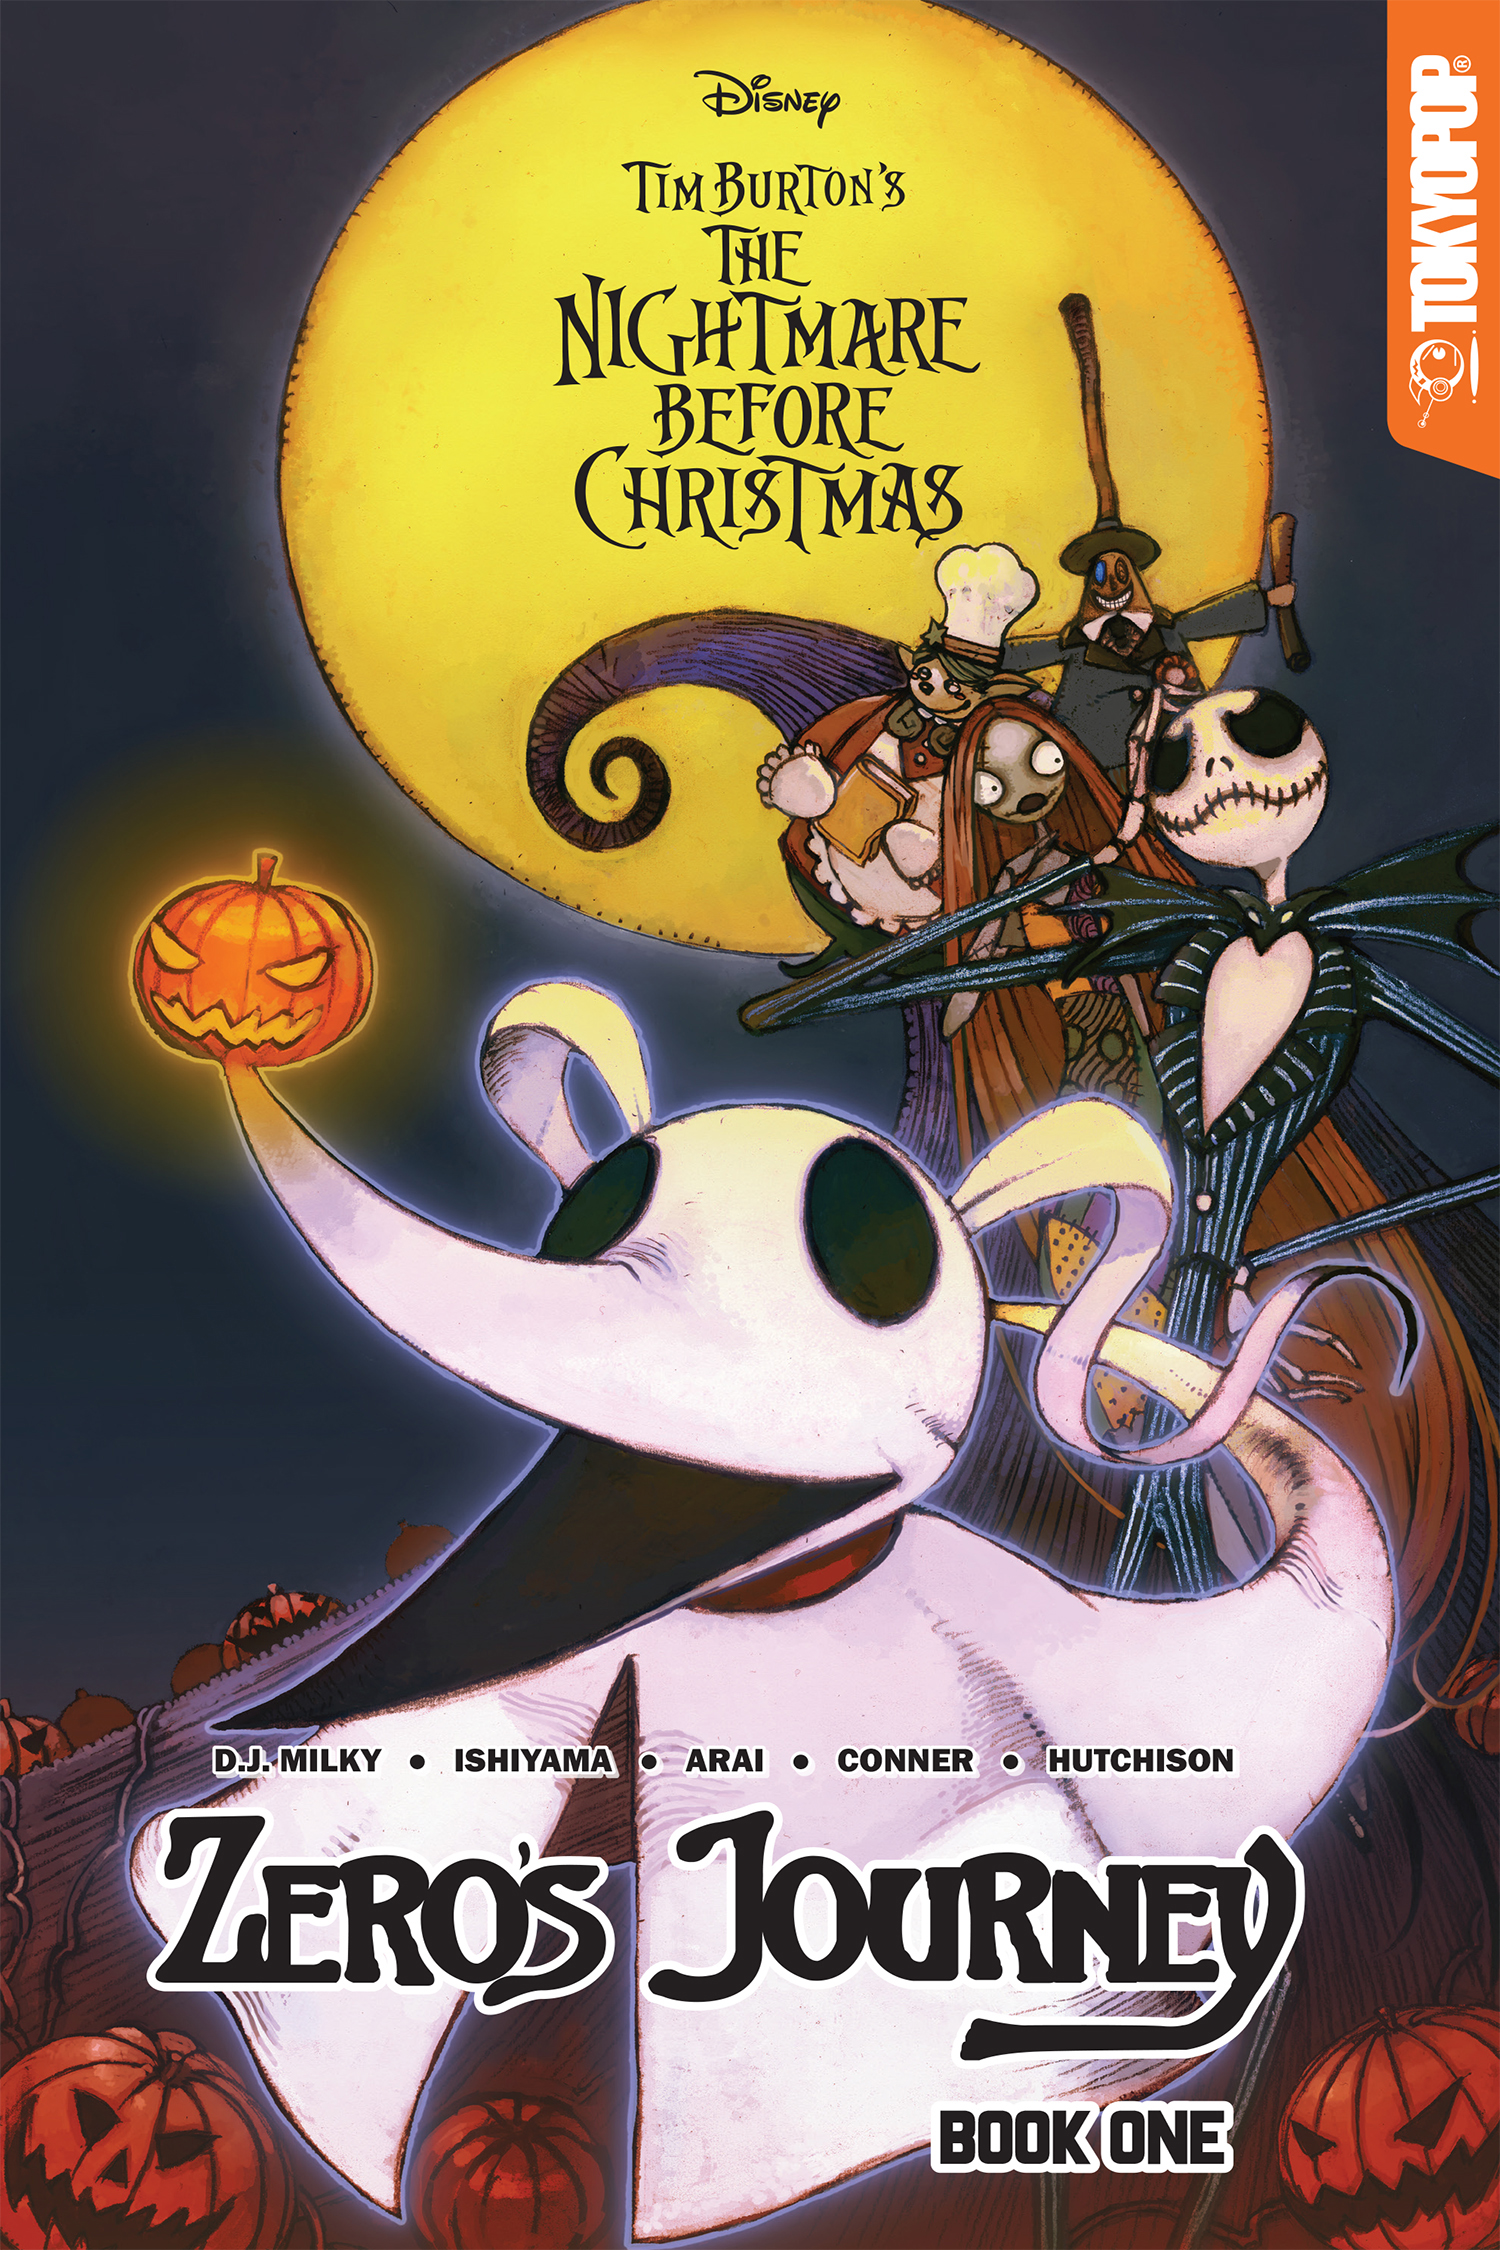 DISNEY MANGA NIGHTMARE CHRISTMAS ZEROS JOURNEY TP VOL 01 (JU